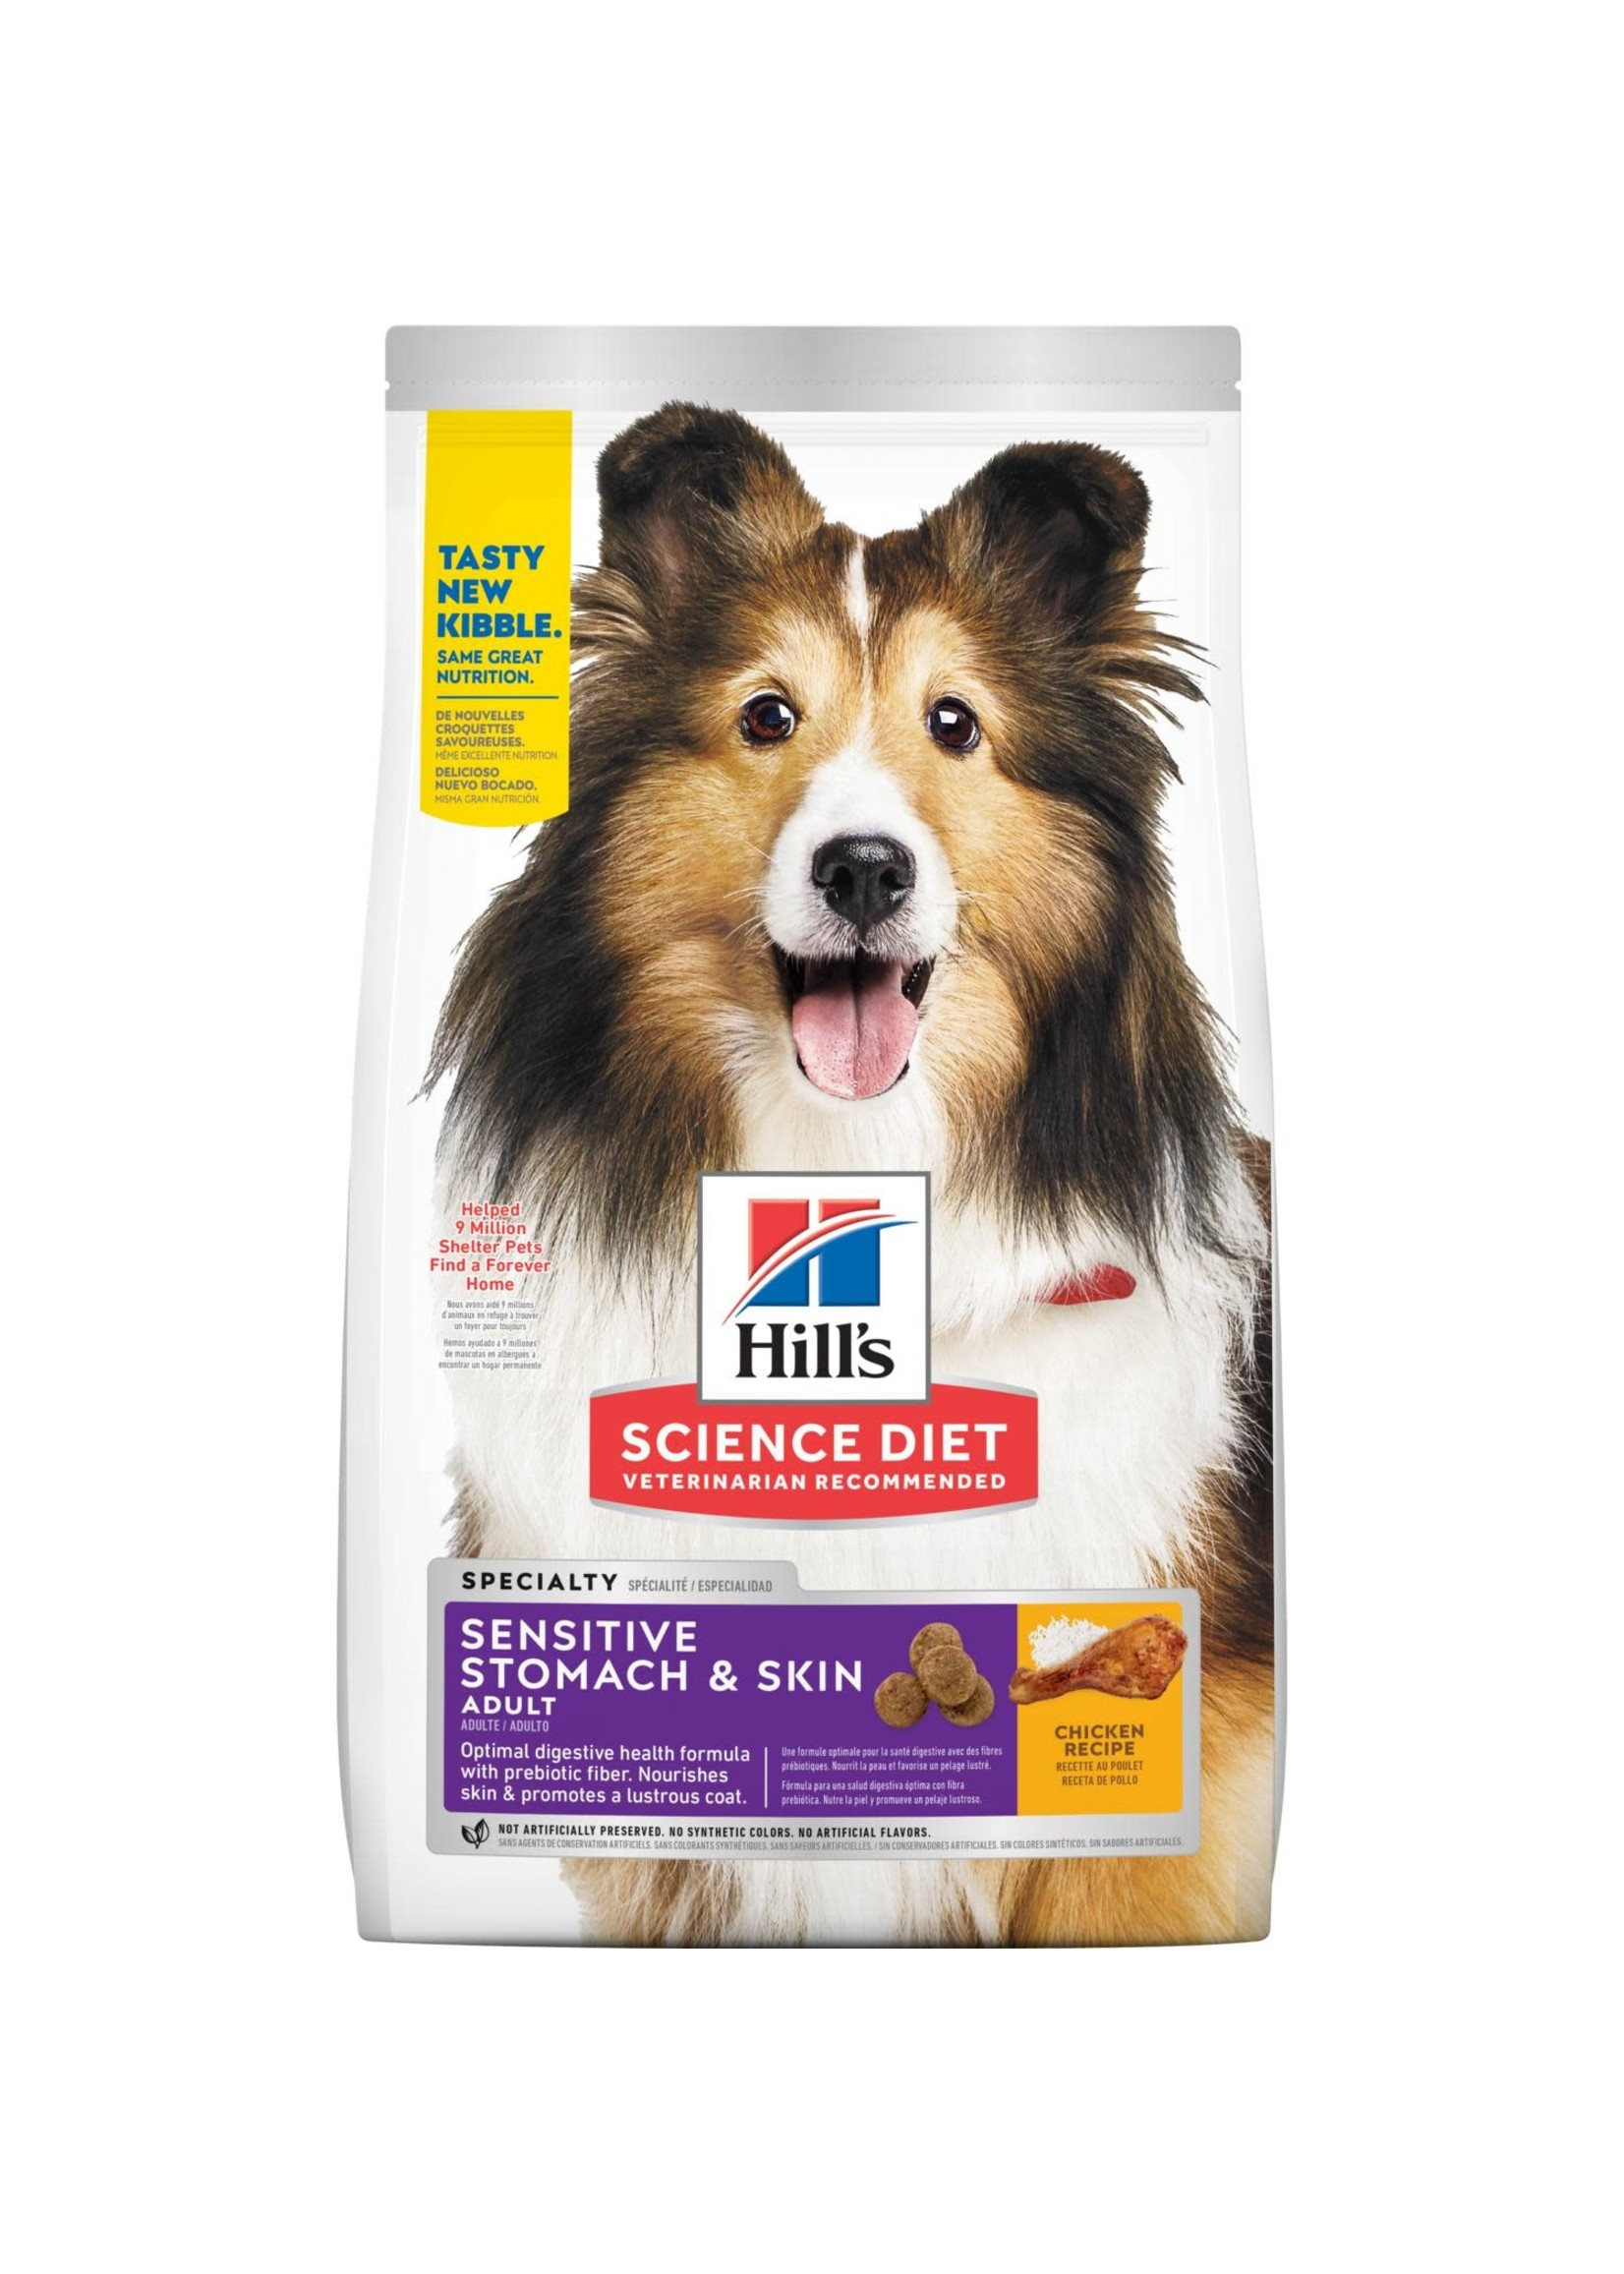 Hill's Science Diet Hill's Science Diet Sensitive Stomach & Skin Dry Dog Food